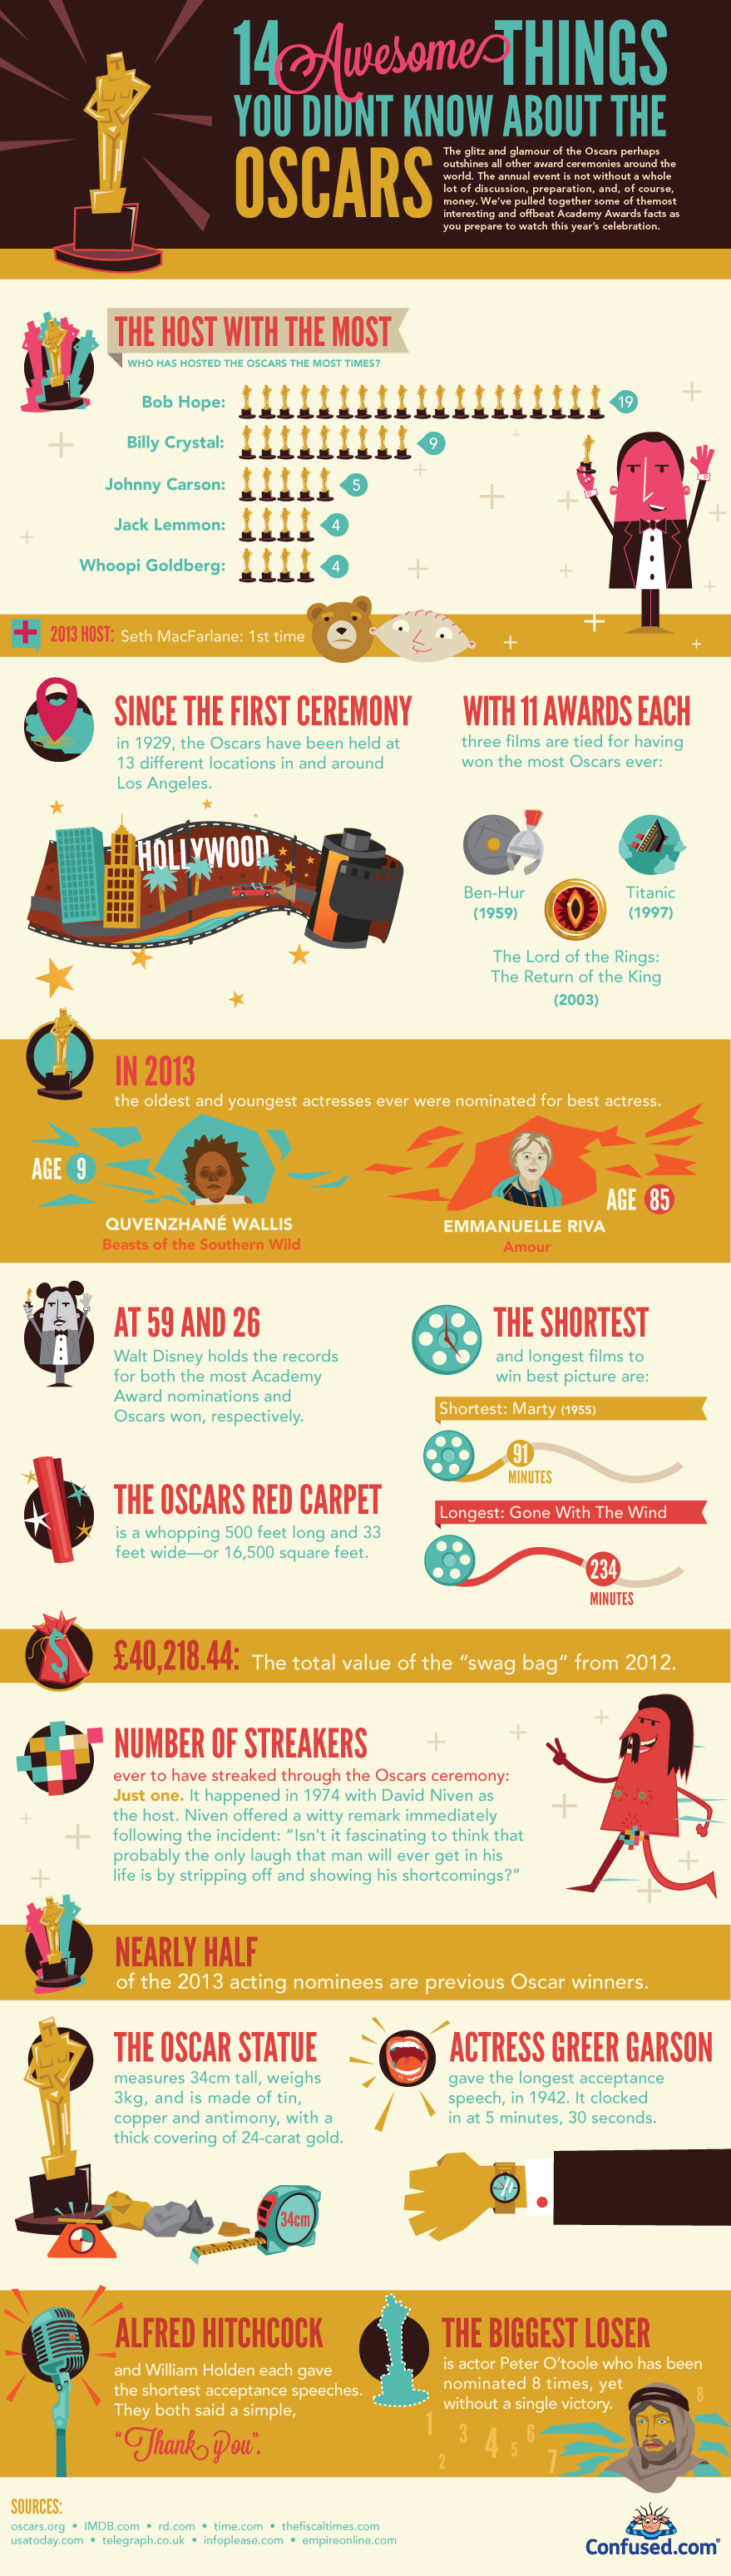 14 Interesting Facts about The Oscars